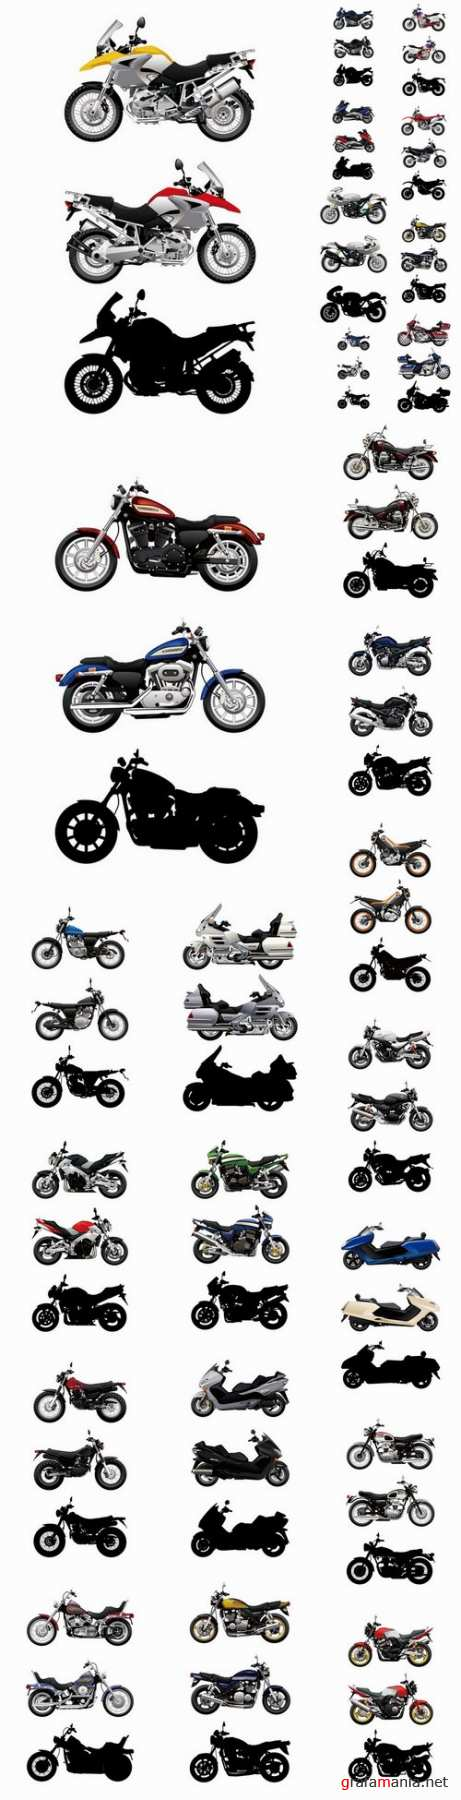 Motorcycle sport bike chopper motocross bike enduro 25 EPS1